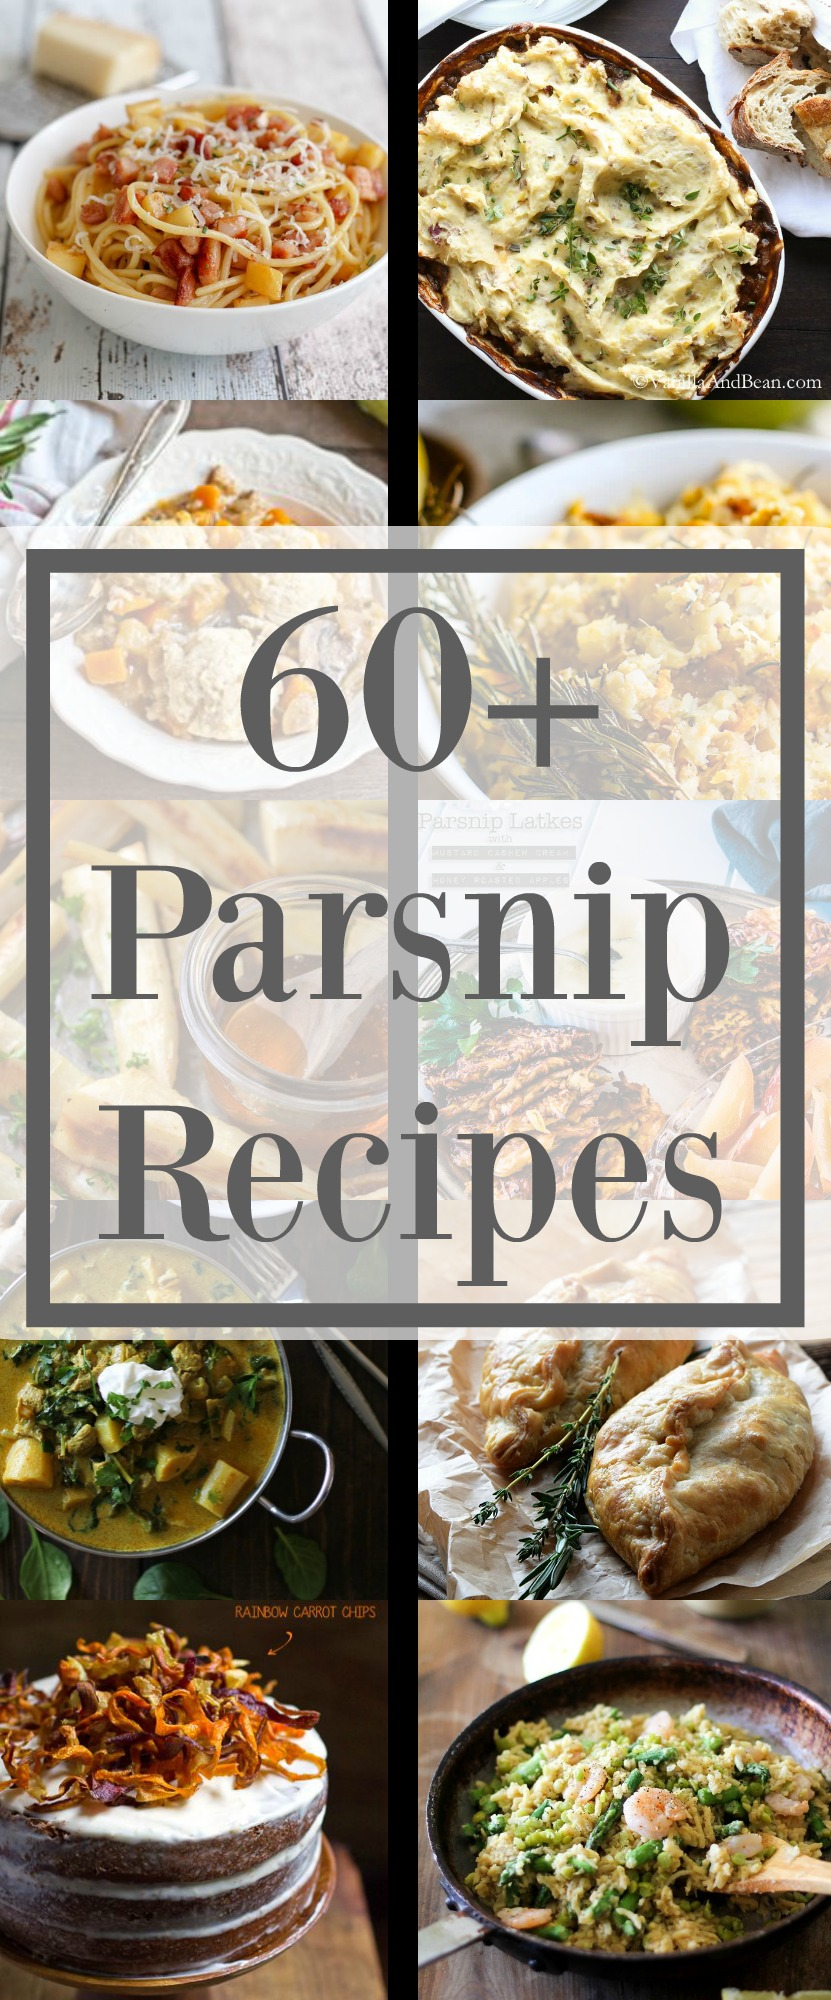 When Parsnips are in season you need only 1 list of recipes and it is this one! Here are 60+ of the Greatest Recipes for Parsnips around the web.